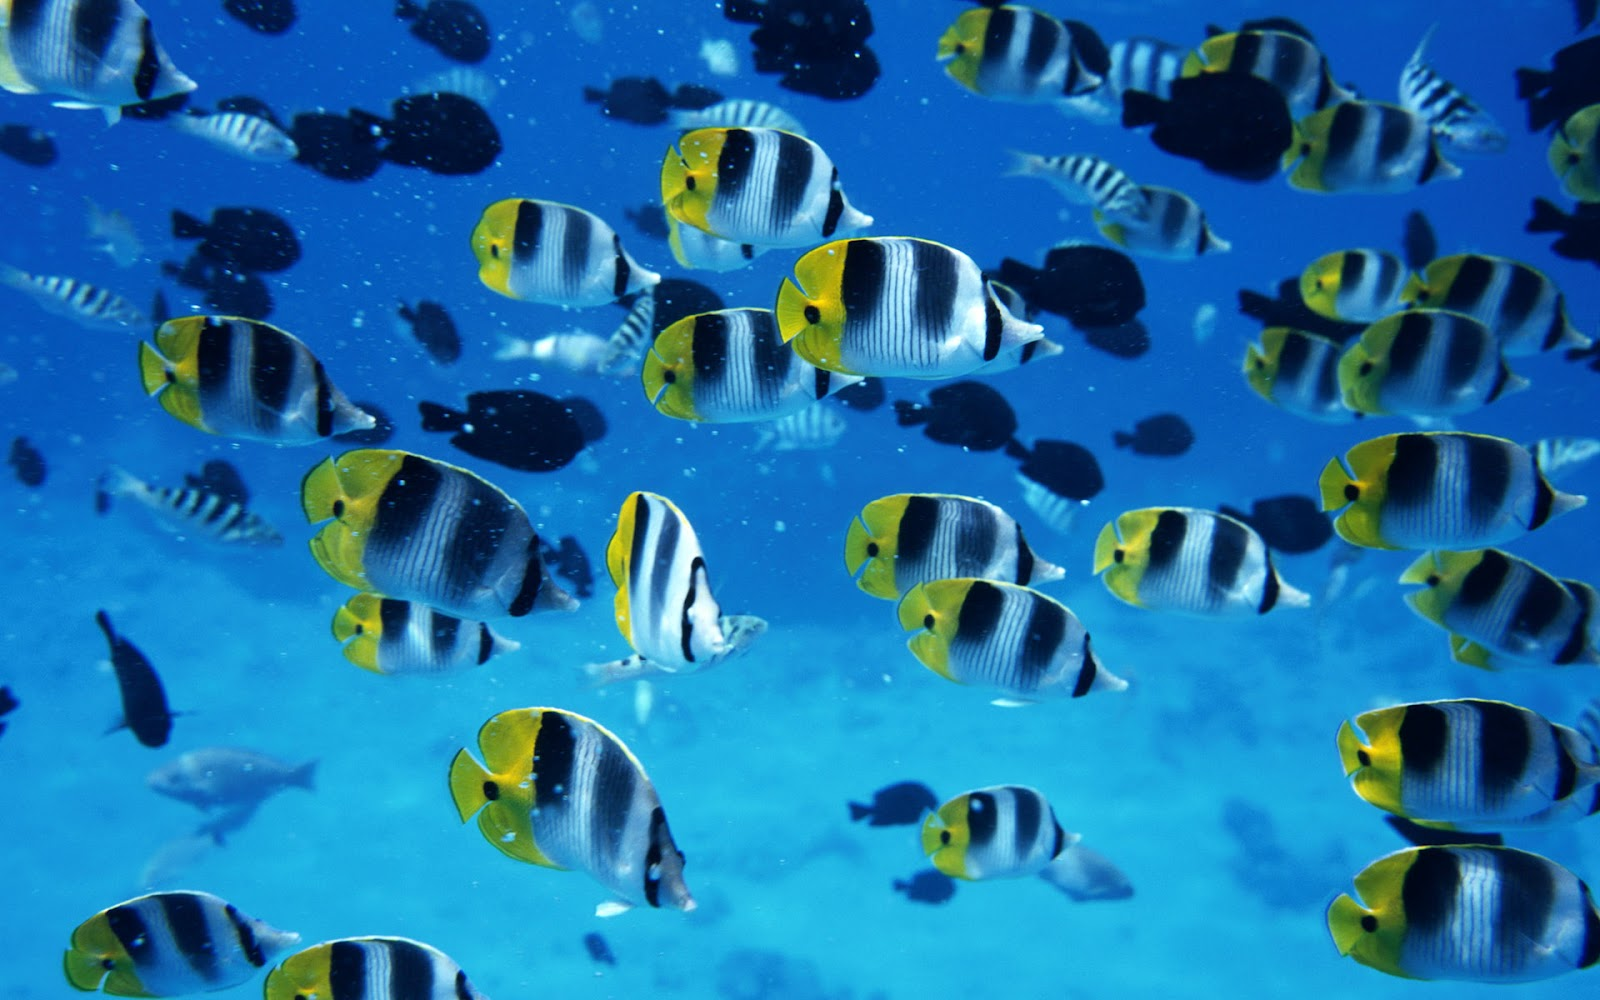 Wallpaper backgrounds l desktop wallpapers l download for Fish in sea